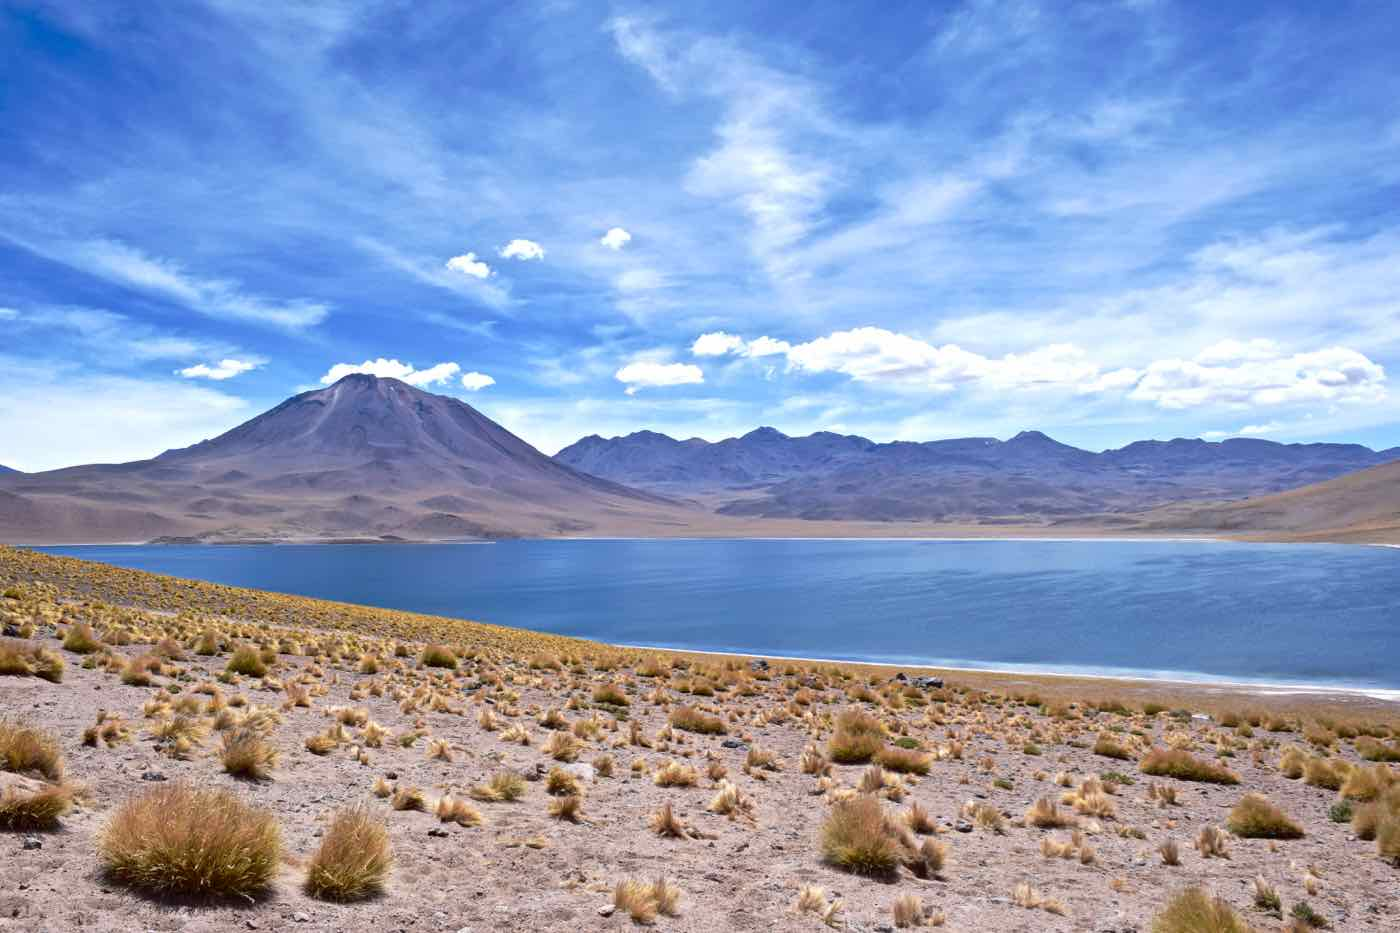 Miscanti Volcano and Lagoon - Chile's lagunas altiplanicas